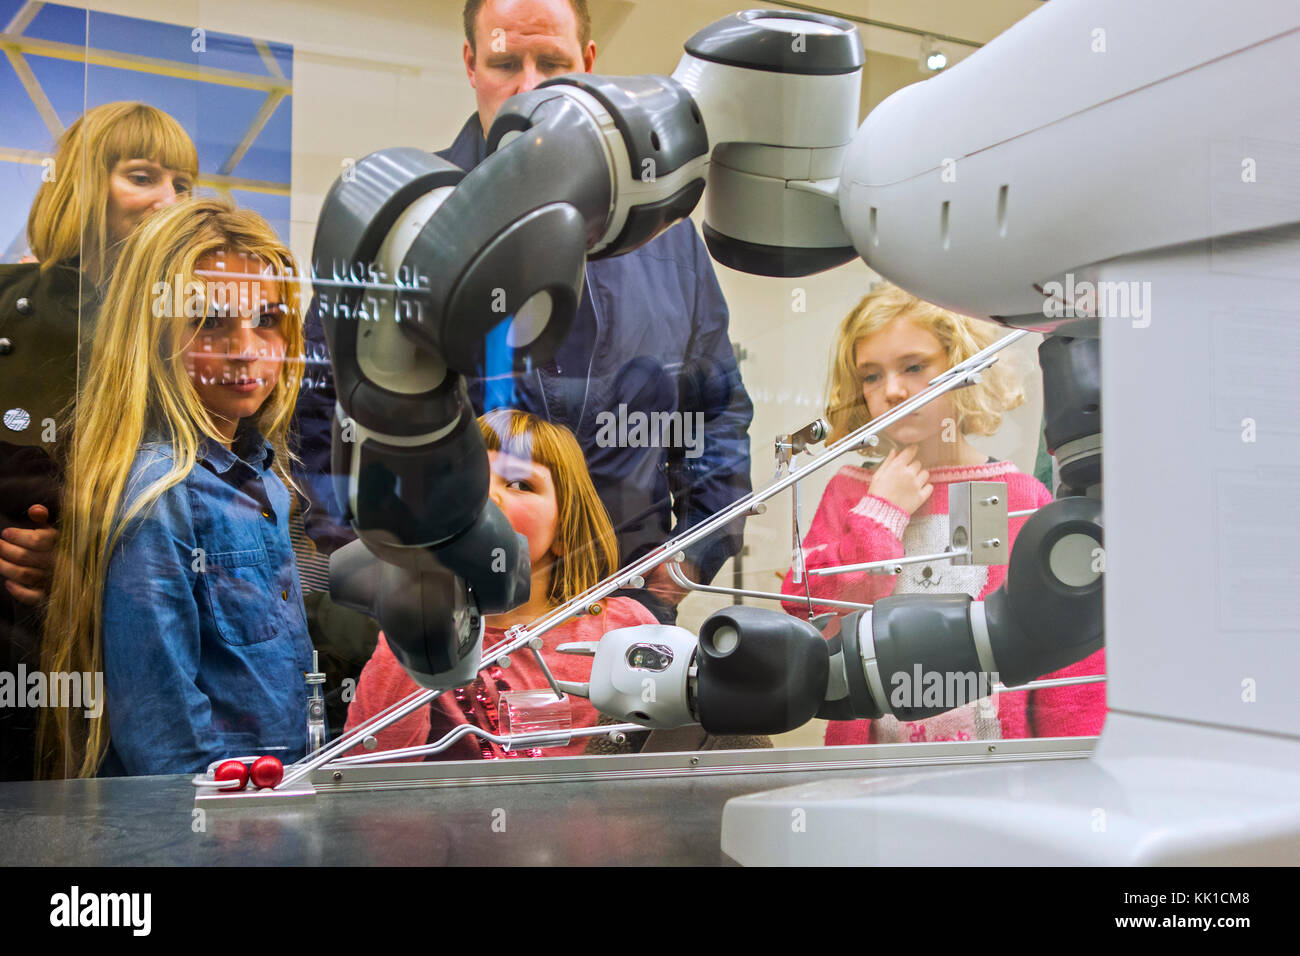 Curious Children Looking At Demonstration With Industrial Robot Arms